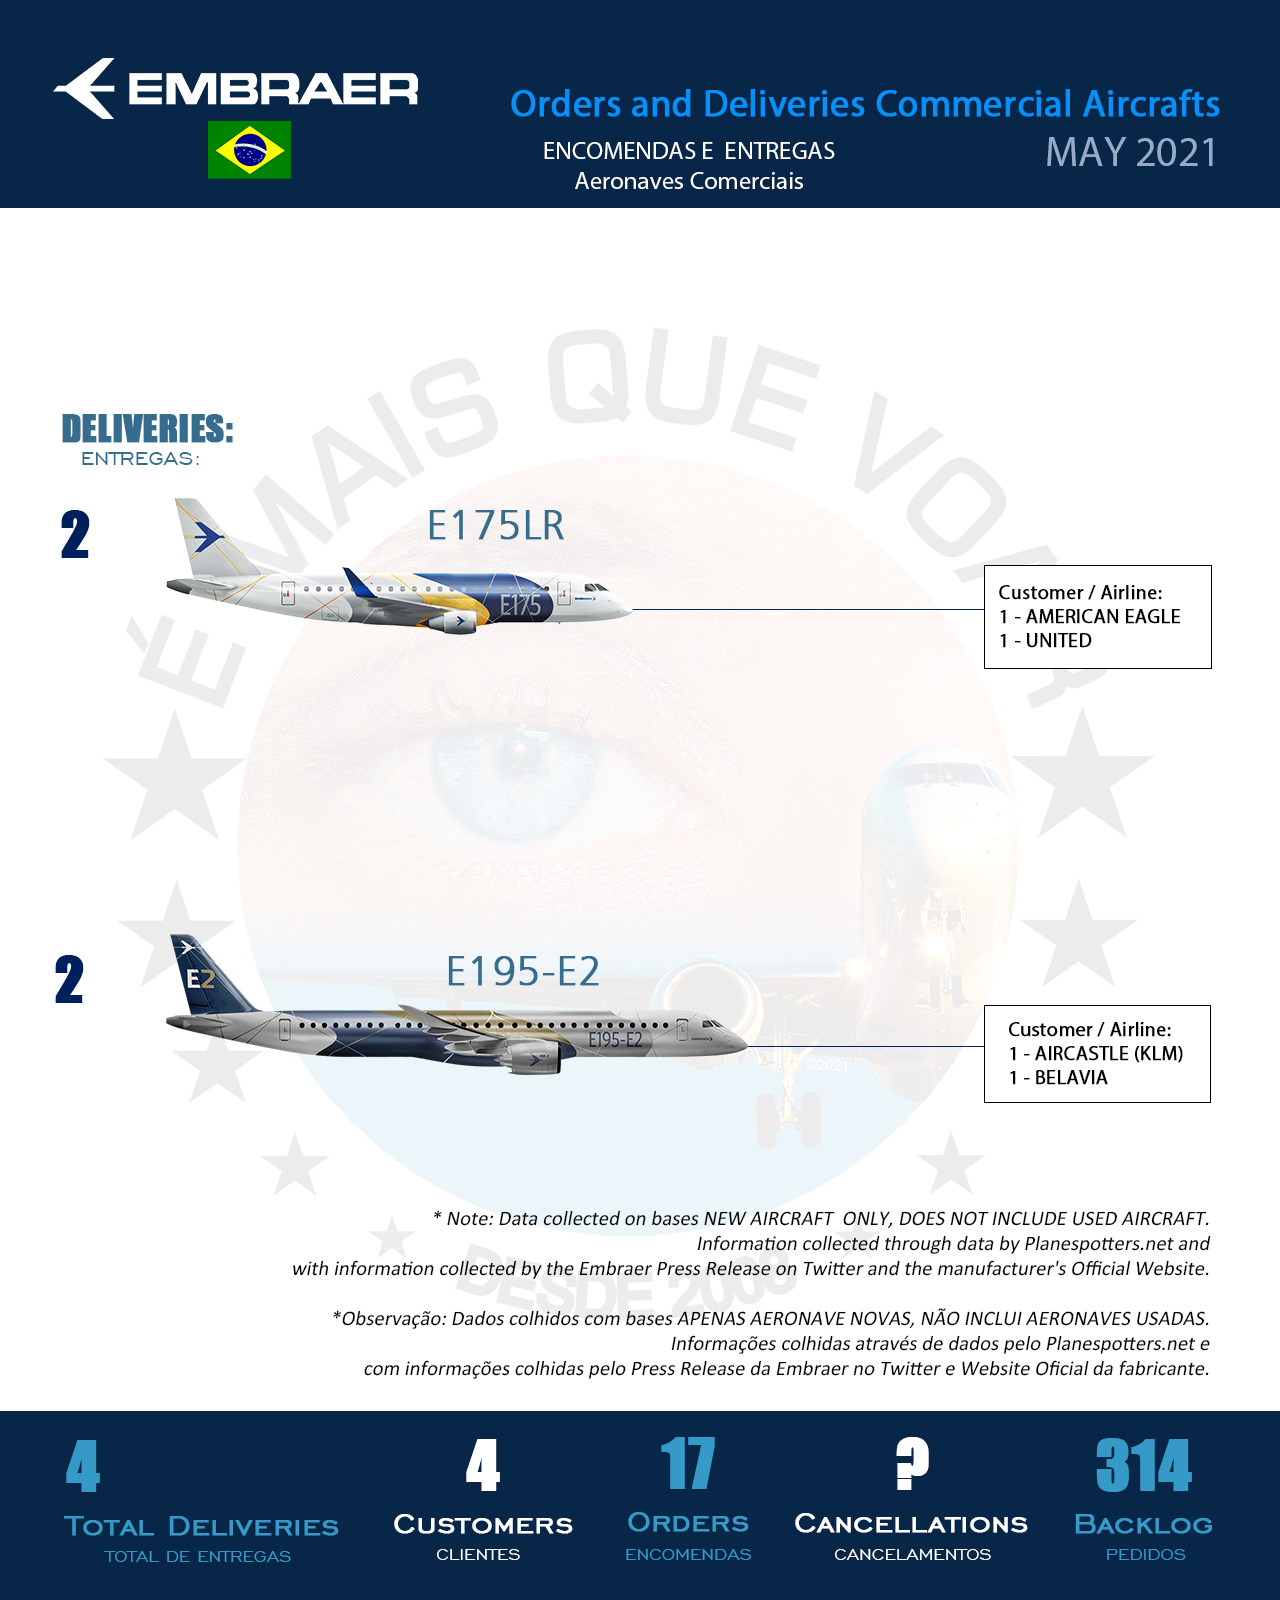 Infographic: Orders and Deliveries Embraer (ERJ) Commercial Aircrafts – MAY 2021 | MORE THAN FLY